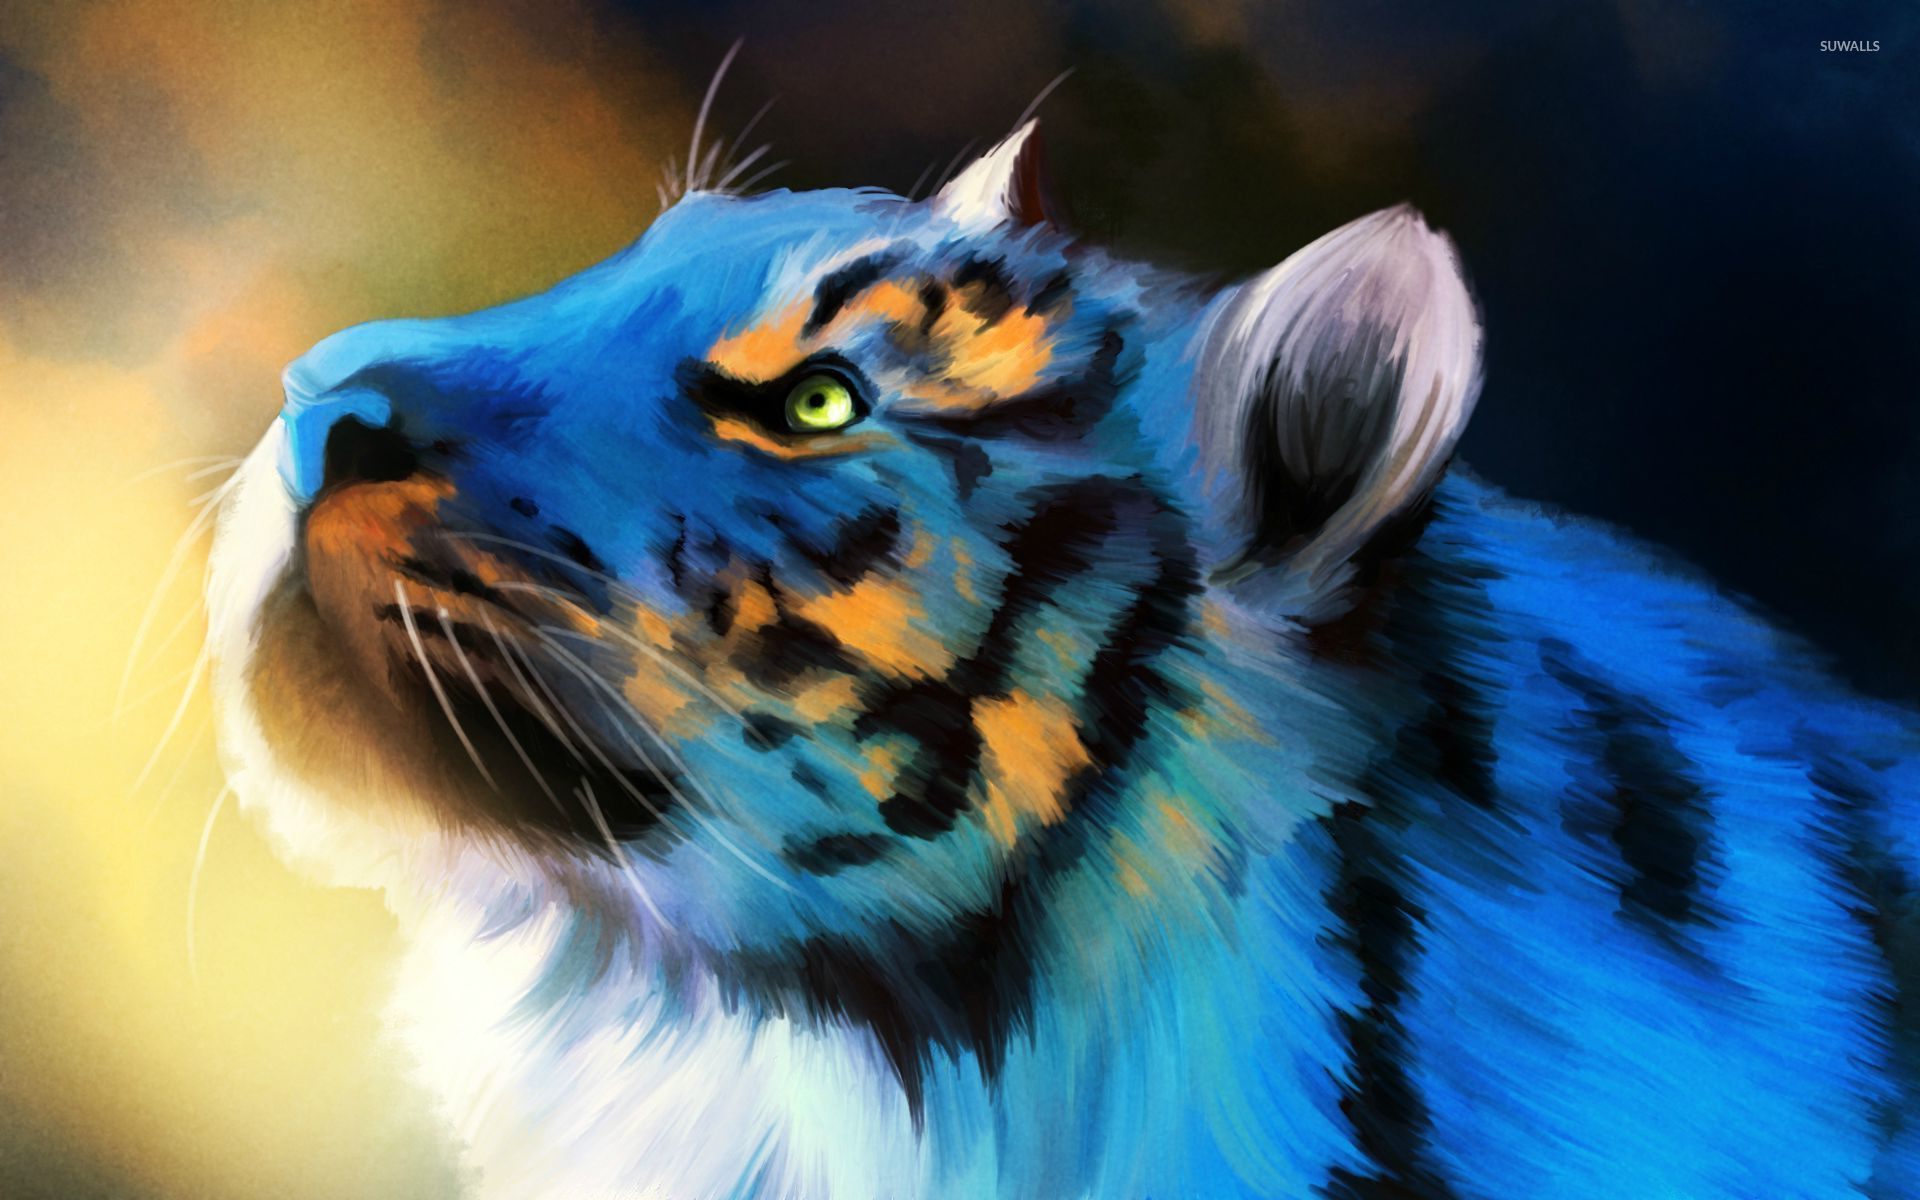 Tiger 18 wallpaper digital art wallpapers 25042 tiger painting wallpaper 1920x1200 jpg thecheapjerseys Image collections